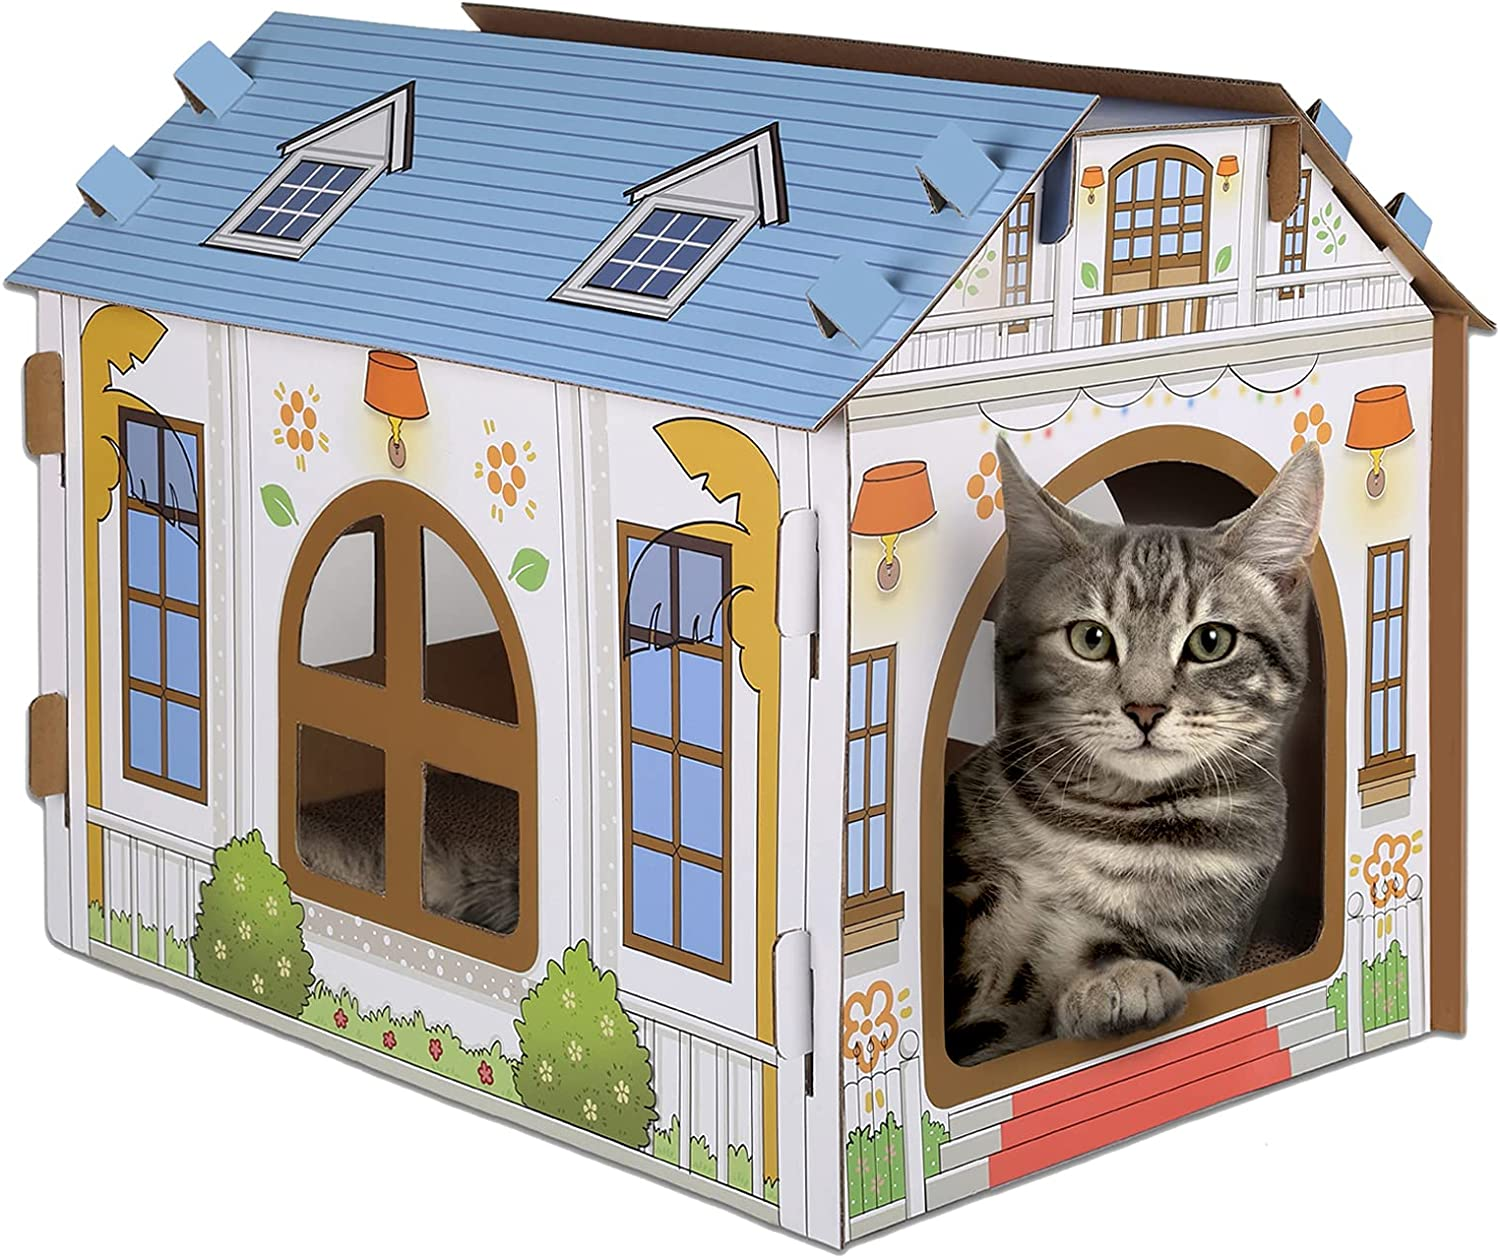 SEKAM Cardboard Cat House with Scratcher/Catnip, Cat Play House for Indoor Cats, Cat Scratching Toy, Cat Hideaway Furniture for Cat Birthday